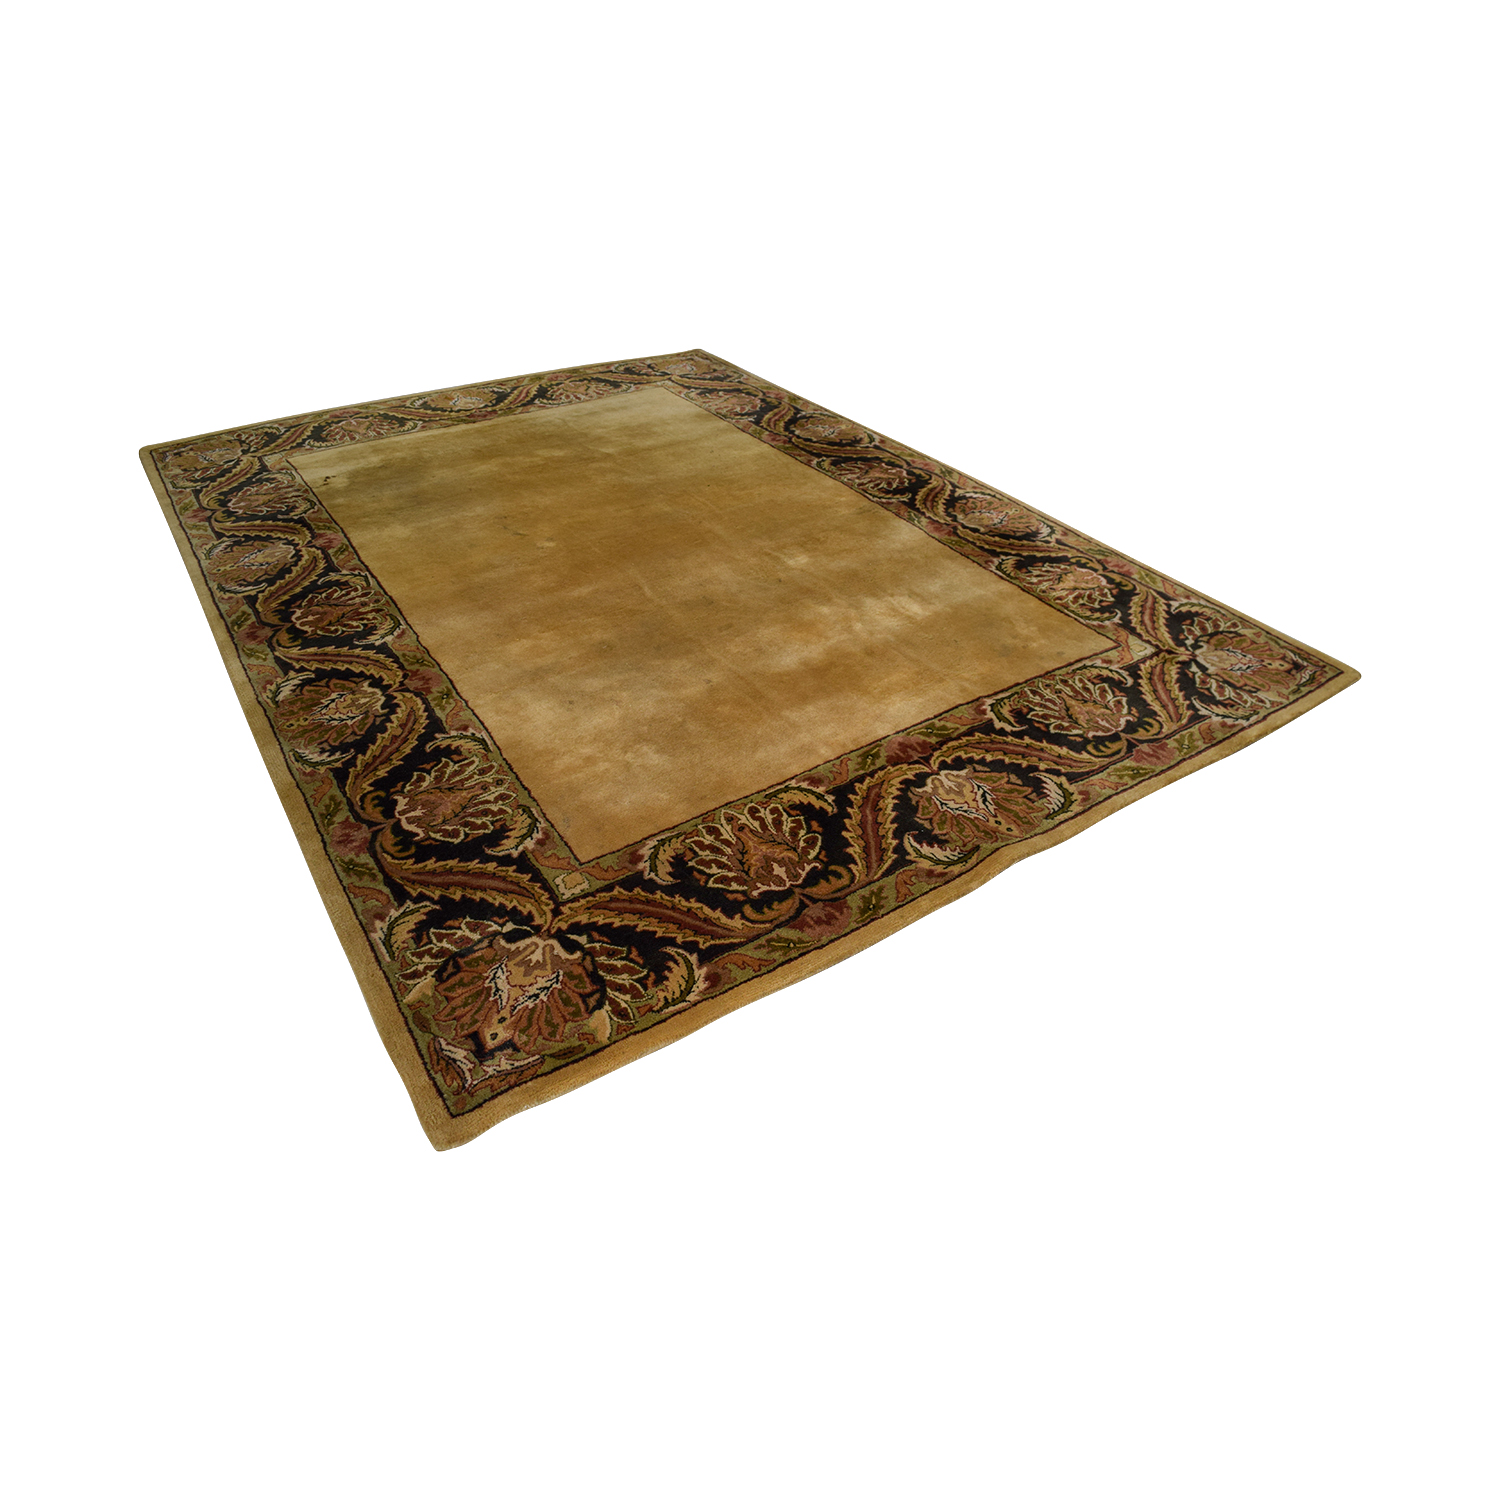 Capel Capel Tan with Multi-Colored Border Wool Rug price